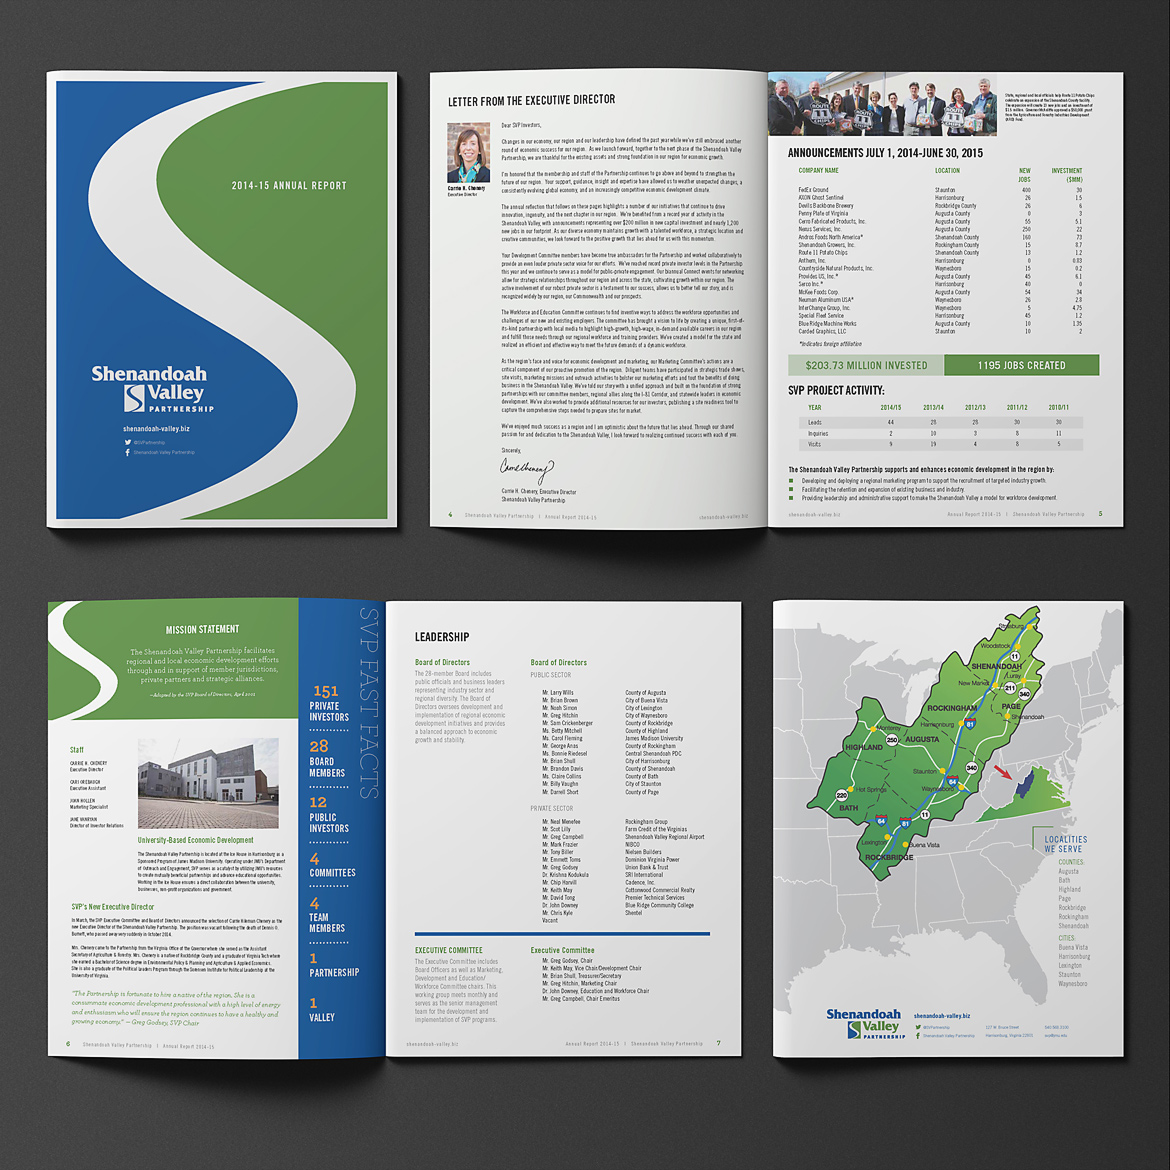 Shenandoah Valley Partnership: Annual Report, Signage, & Collateral-4